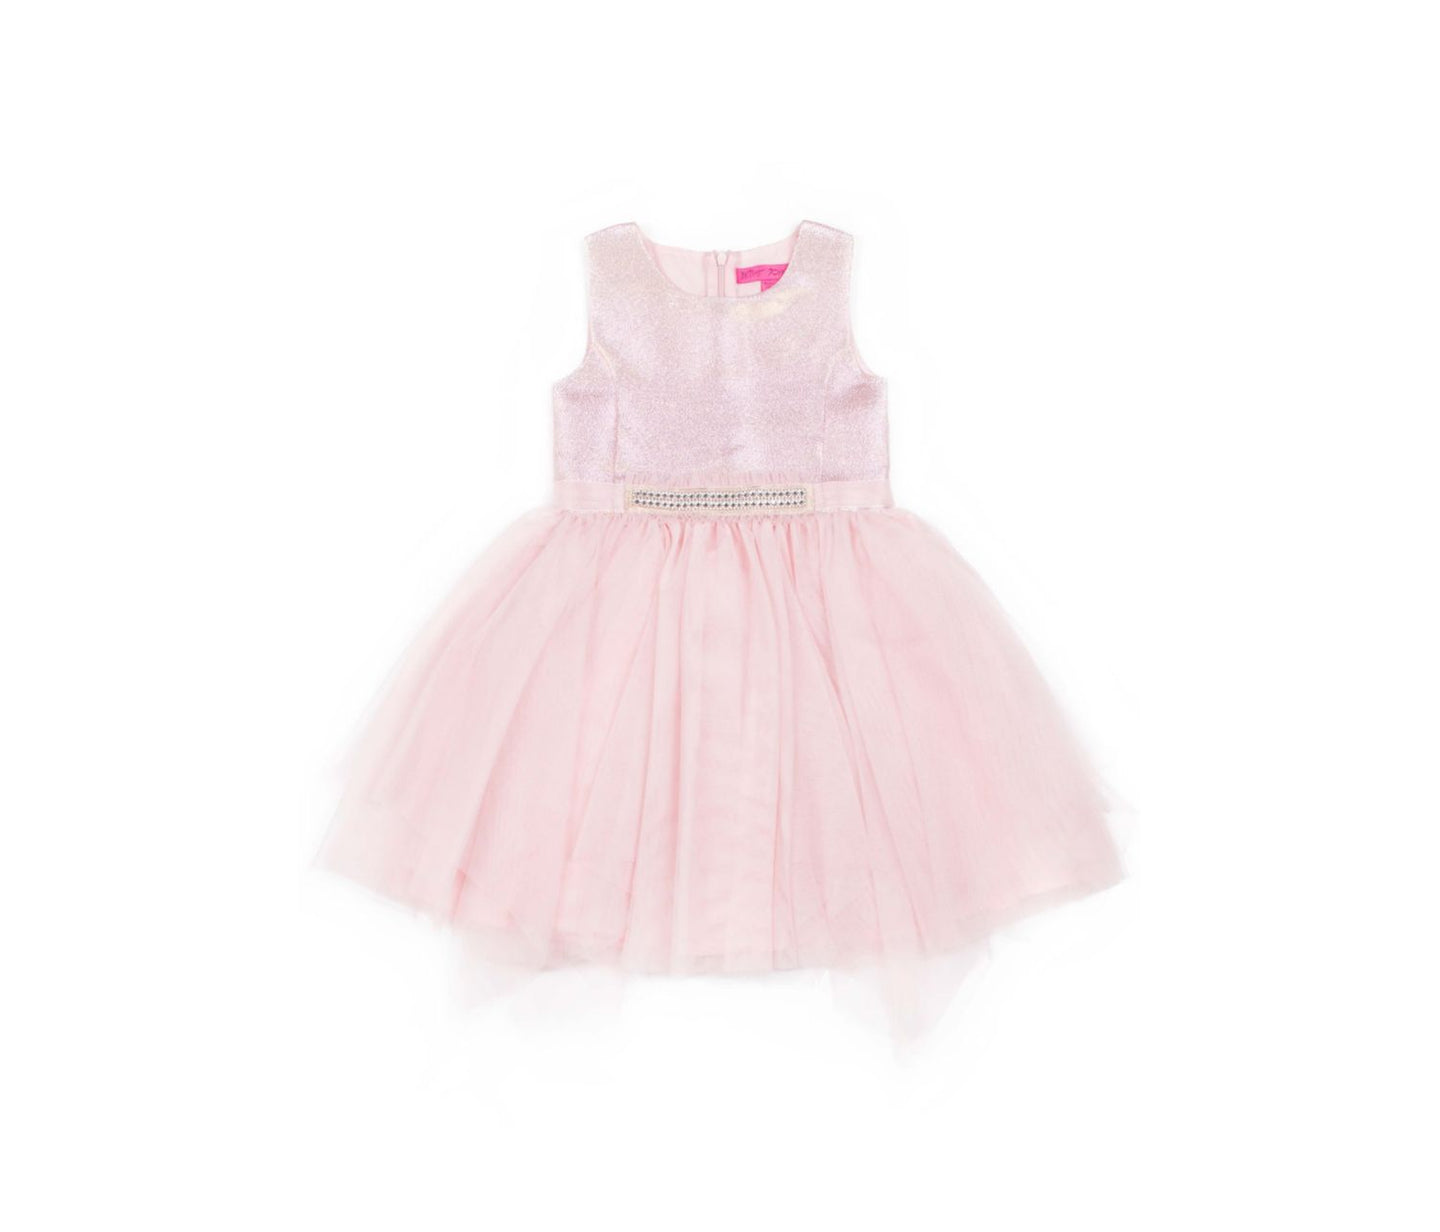 ALL THAT GLITTERS 4-6X DRESS PINK - APPAREL - Betsey Johnson